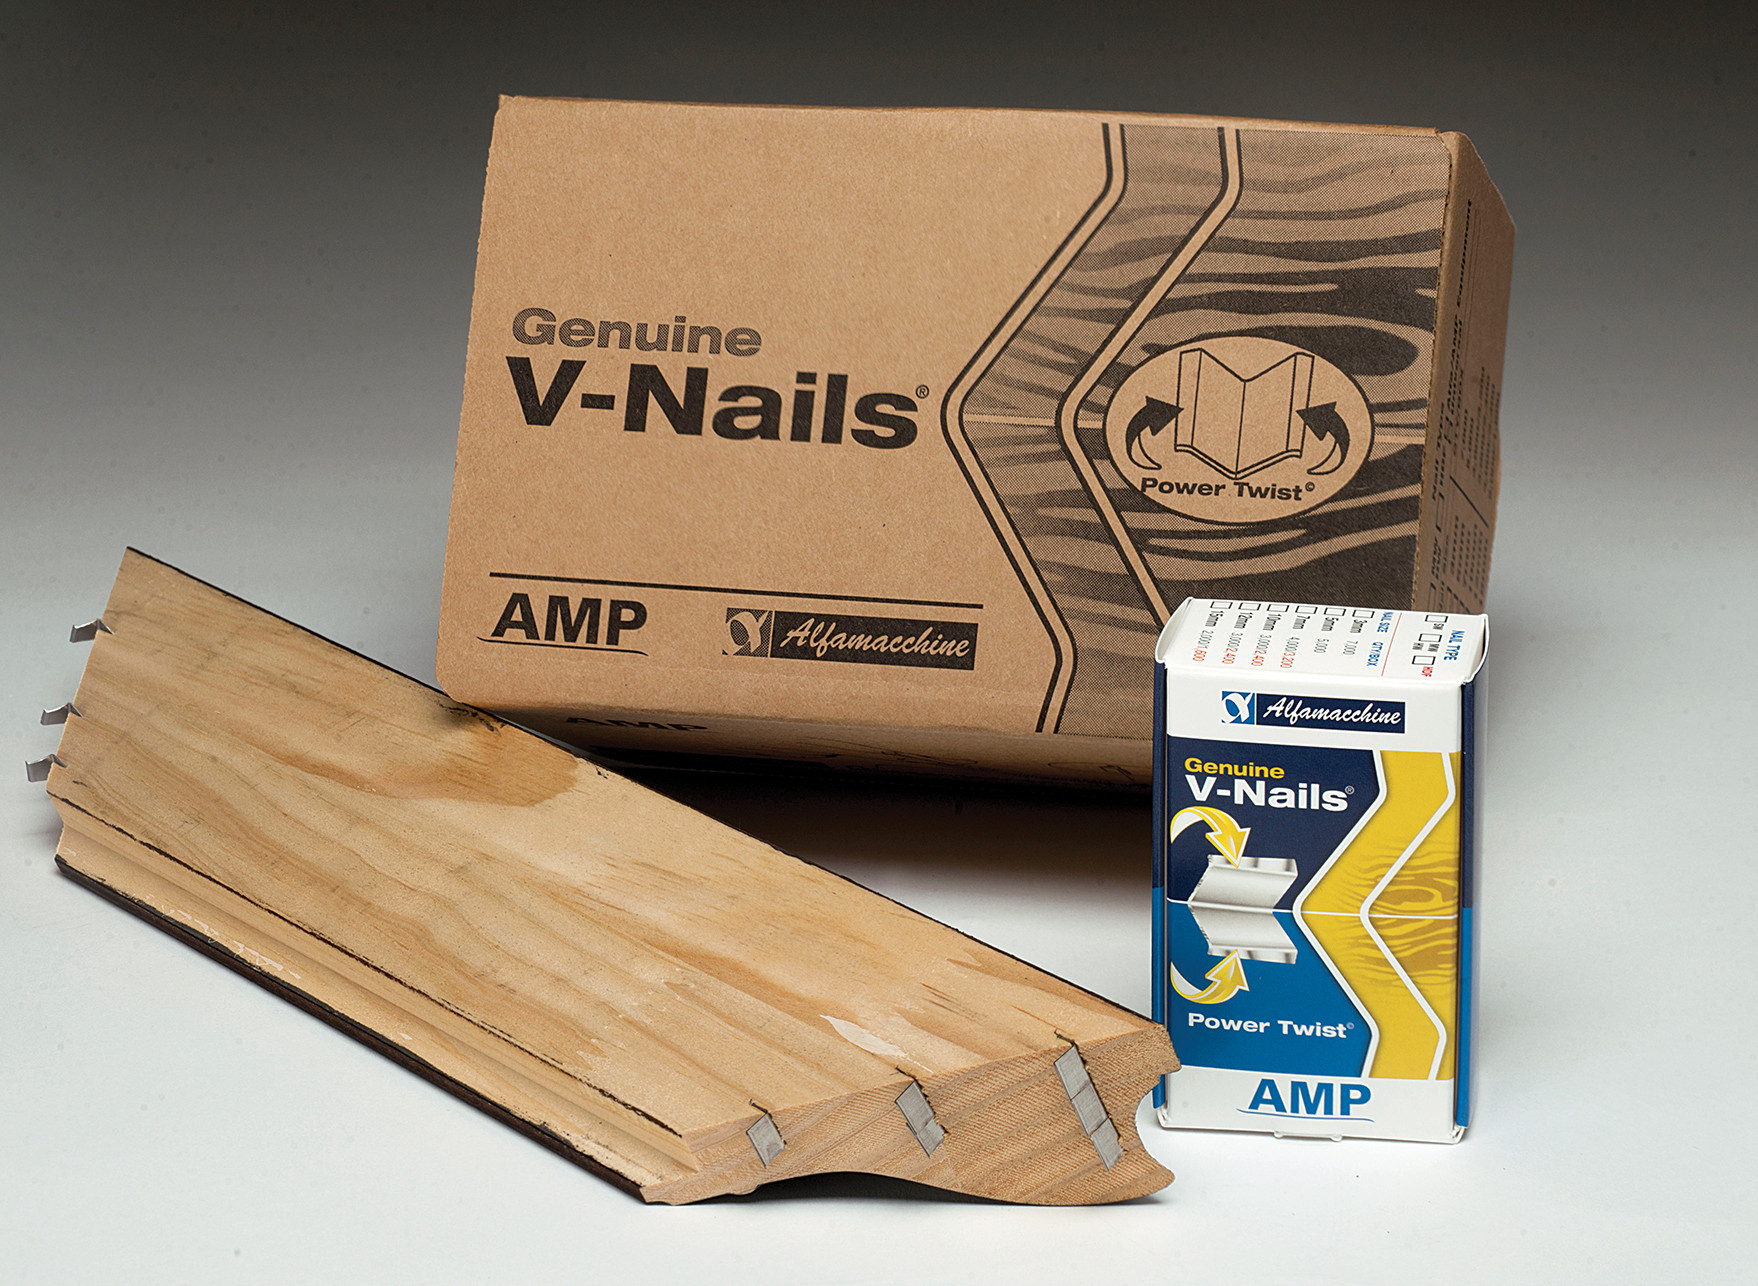 V-Nail Packaging.jpg